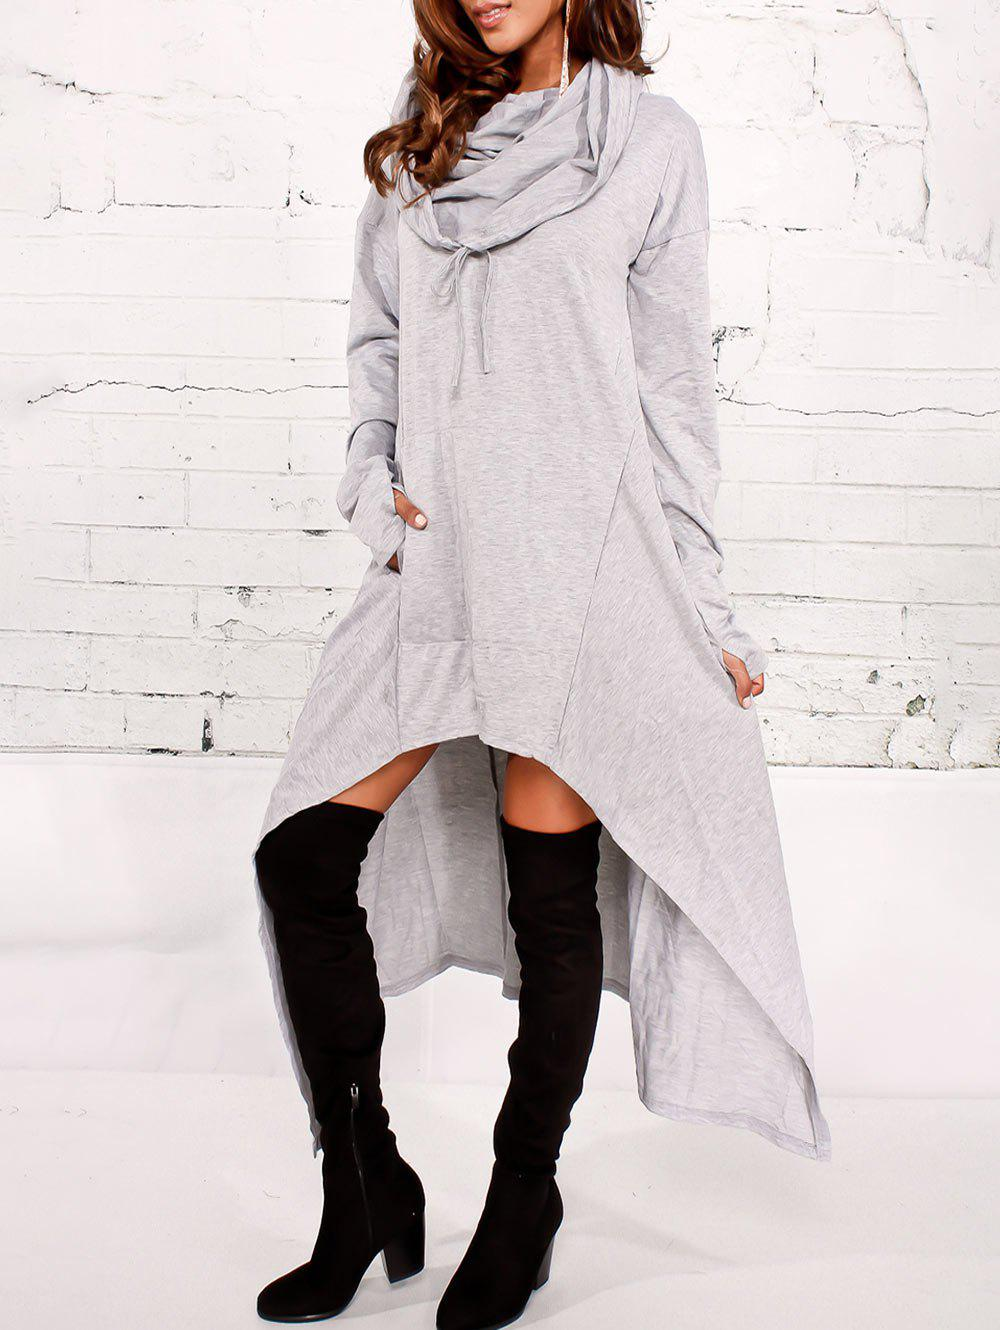 Kangaroo Pocket Maxi Asymmetric HoodieWOMEN<br><br>Size: L; Color: LIGHT GRAY; Material: Cotton,Polyester; Shirt Length: X-Long; Sleeve Length: Full; Style: Fashion; Pattern Style: Solid; Embellishment: Front Pocket; Season: Fall,Spring; Weight: 0.7000kg; Package Contents: 1 x Hoodie;